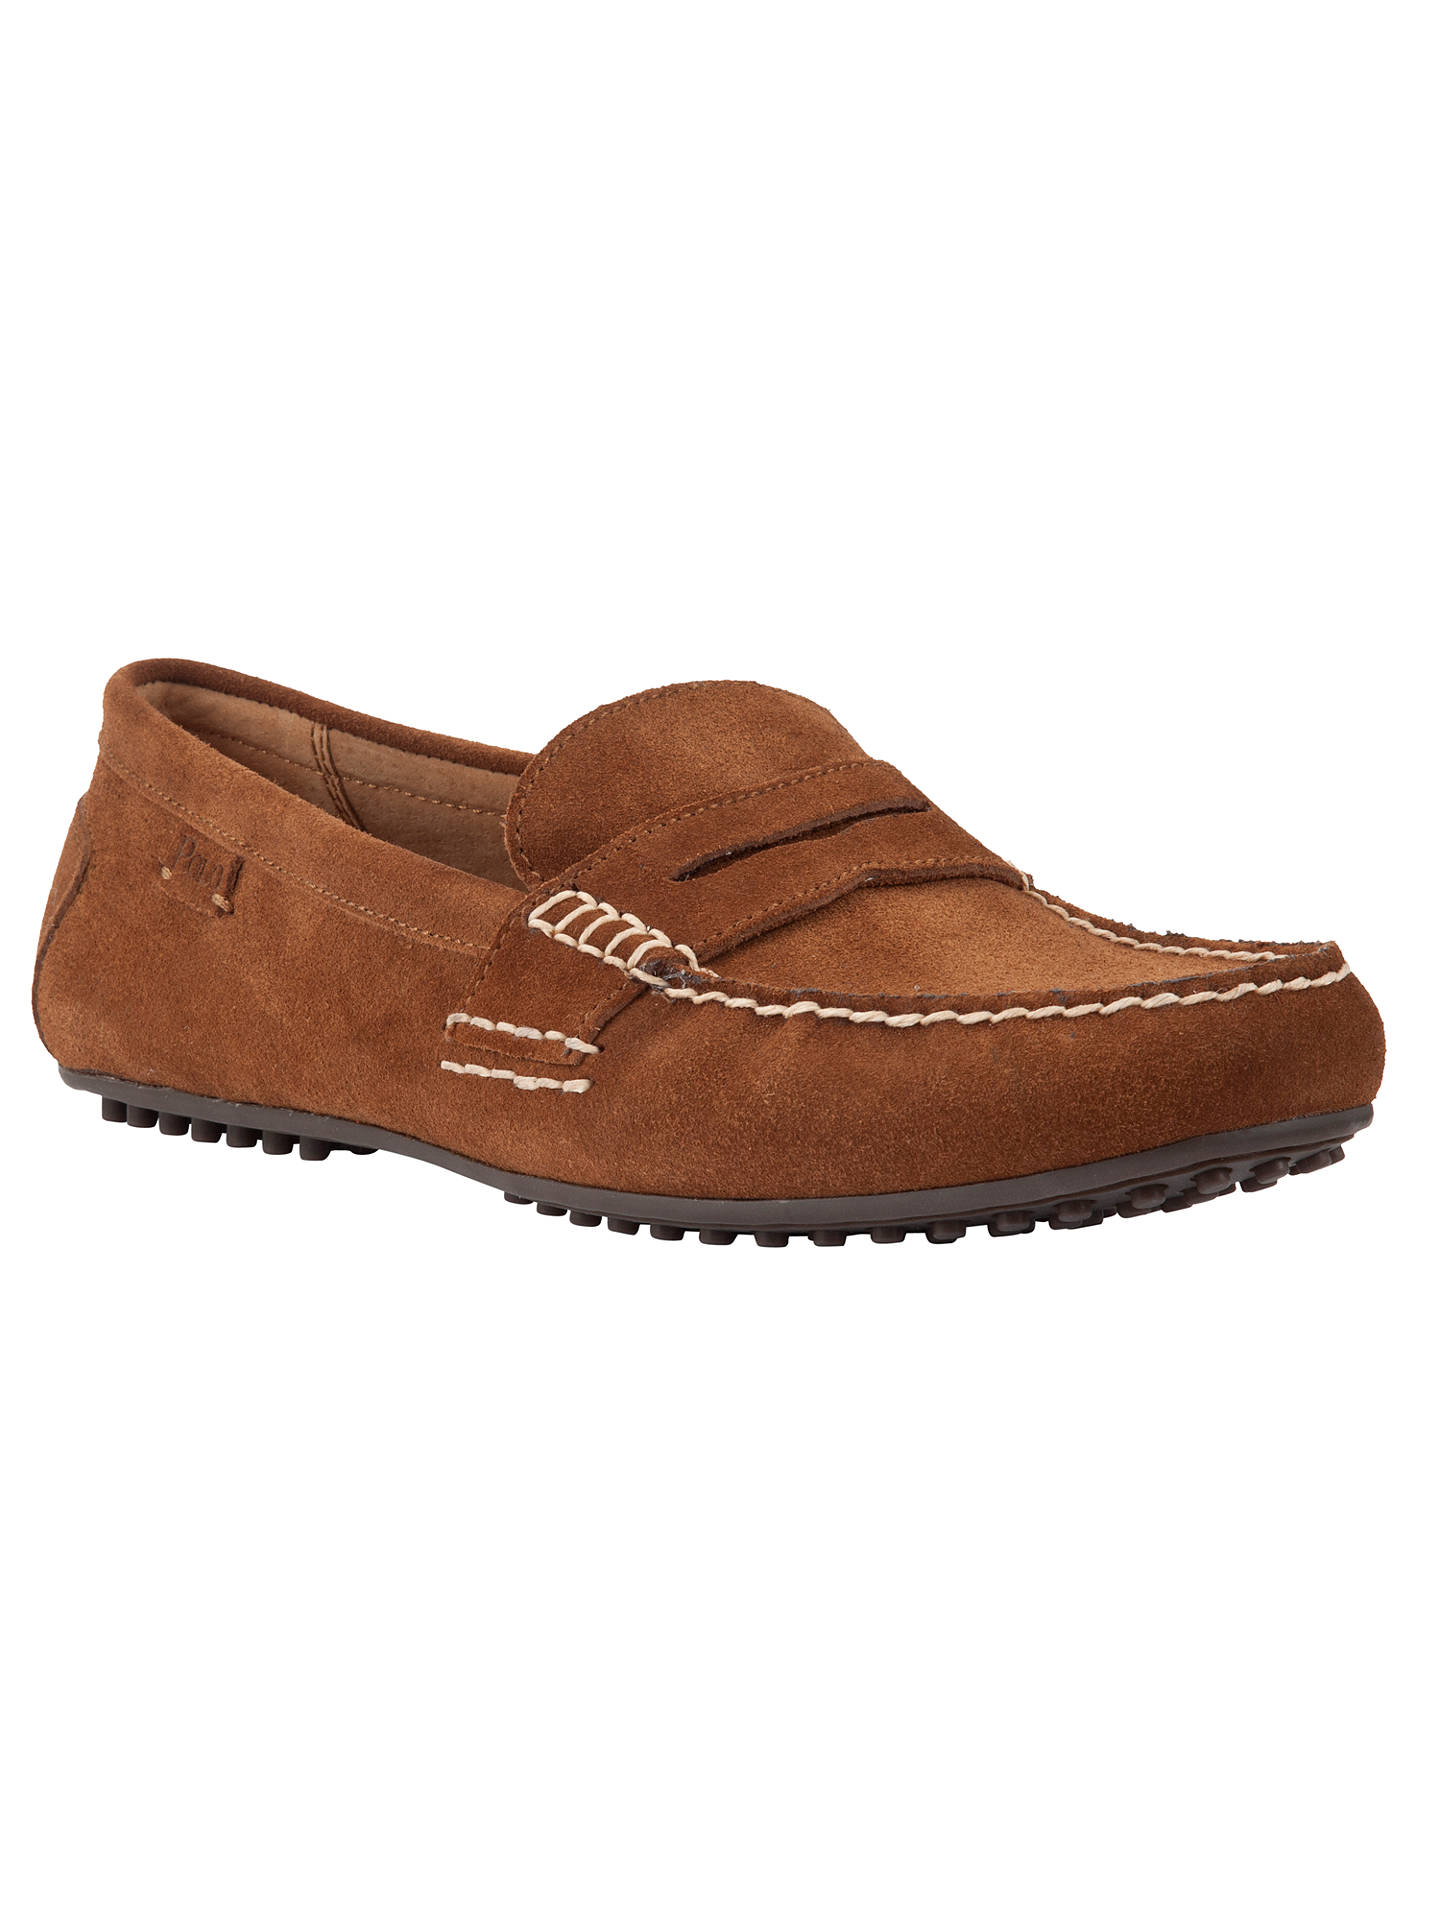 36bbc40bdde Polo Ralph Lauren Wes Suede Loafers at John Lewis   Partners